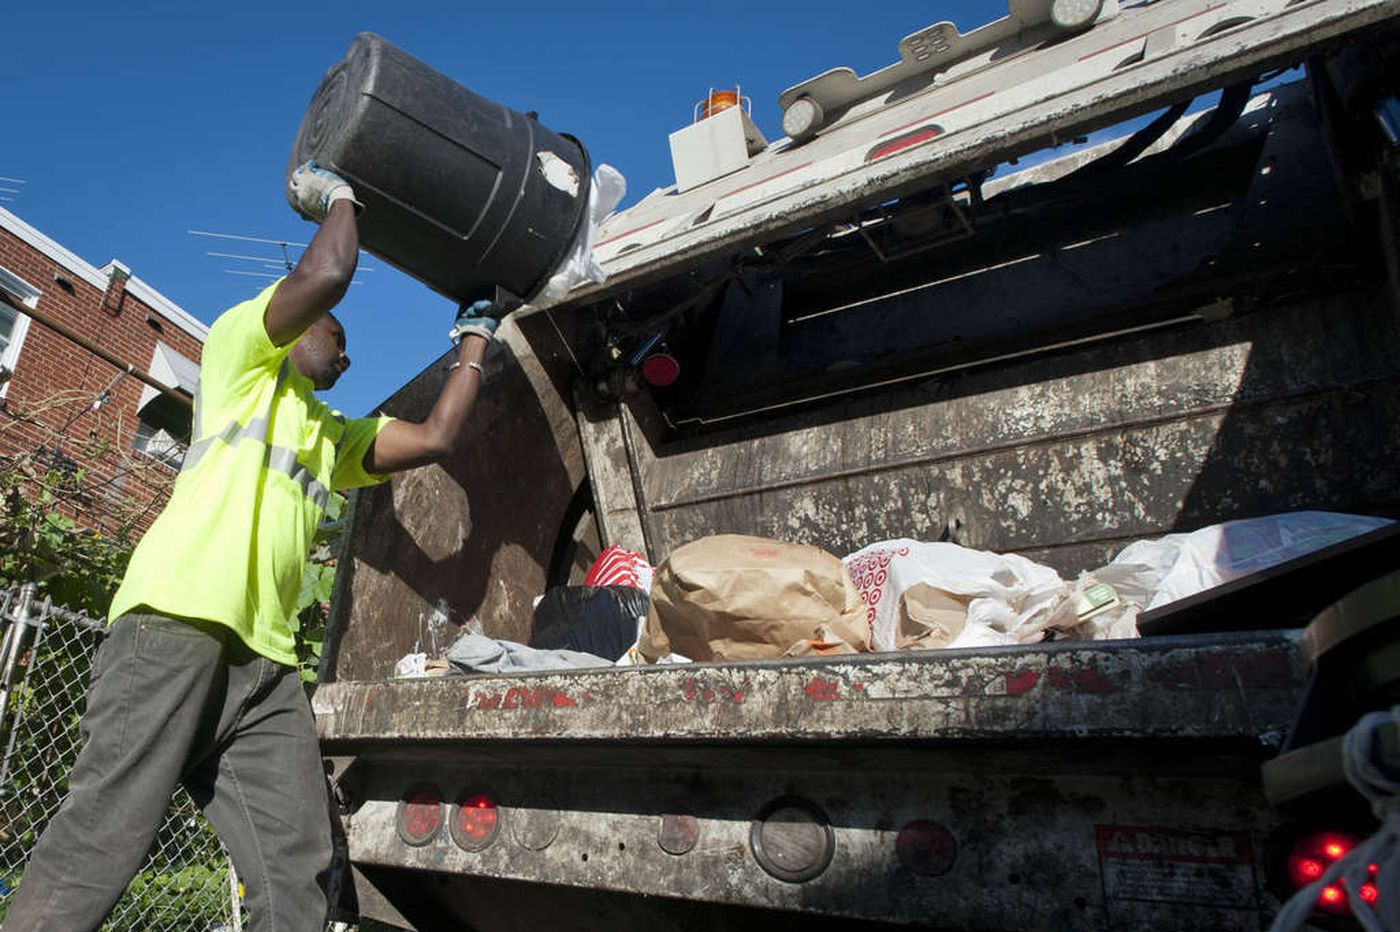 How early can you put out your trash in Philly? Your garbage questions, answered.